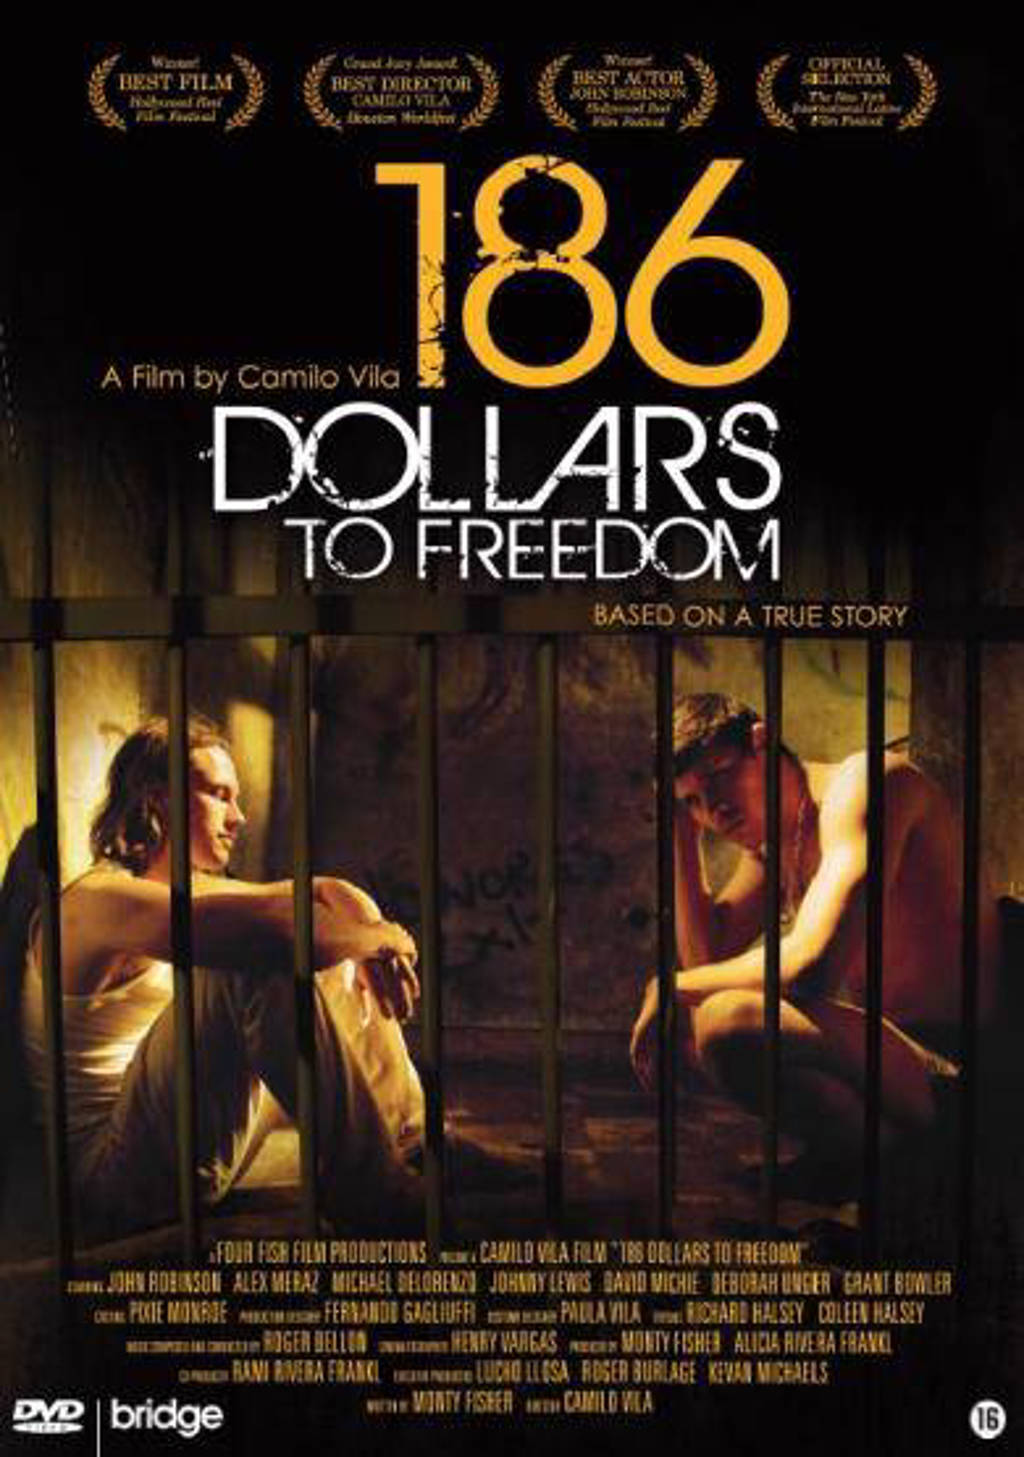 186 dollars to freedom (DVD)